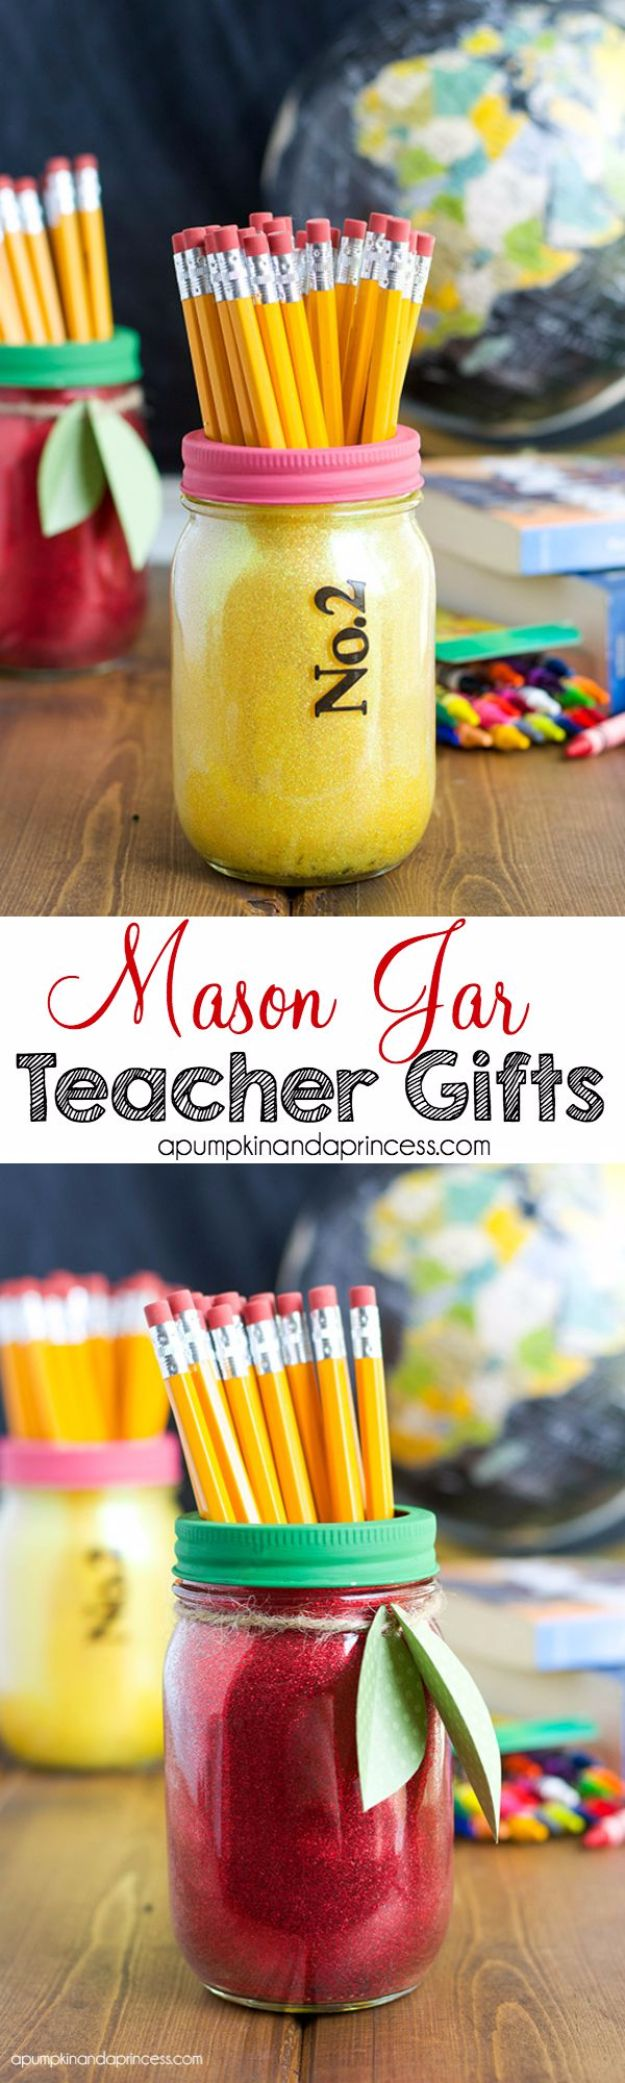 DIY Teacher Gifts - Glitter Mason Jar Teacher Gifts - Cheap and Easy Presents and DIY Gift Ideas for Teachers at Christmas, End of Year, First Day and Birthday - Teacher Appreciation Gifts and Crafts - Cute Mason Jar Ideas and Thoughtful, Unique Gifts from Kids http://diyjoy.com/diy-teacher-gifts